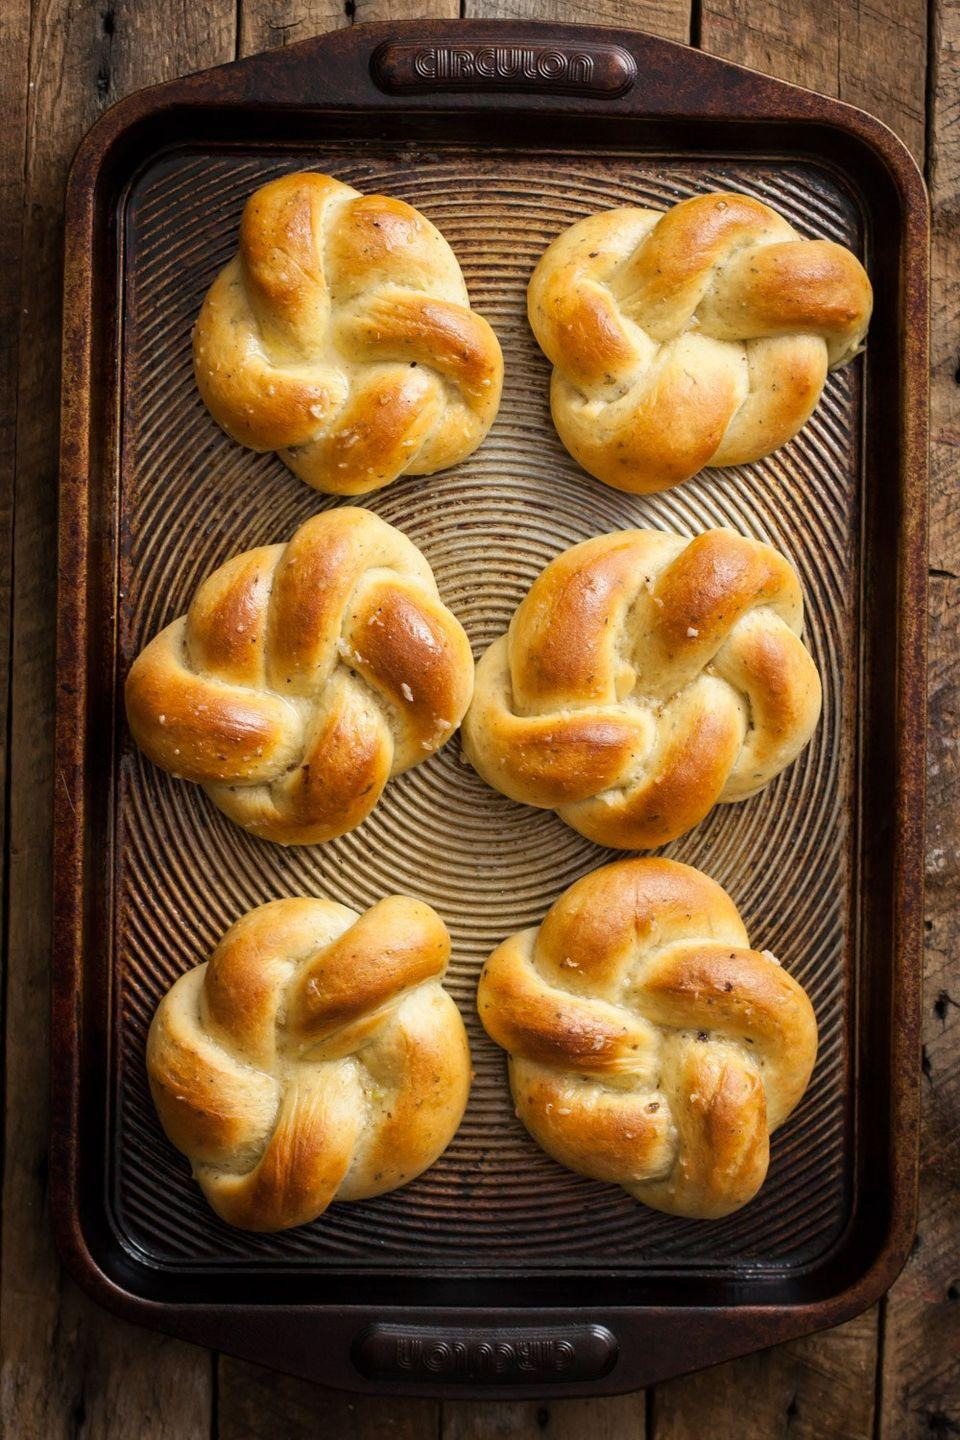 "<p>These beautiful garlic knots will make the perfect addition to any Easter spread. Just use vegan butter (this blogger used <a href=""https://earthbalancenatural.com/"" rel=""nofollow noopener"" target=""_blank"" data-ylk=""slk:Earth Balance"" class=""link rapid-noclick-resp"">Earth Balance</a>). </p><p><a href=""http://mycaliforniaroots.com/vegan-roasted-garlic-herb-dinner-rolls-recipe/"" rel=""nofollow noopener"" target=""_blank"" data-ylk=""slk:Get the recipe from My California Roots »"" class=""link rapid-noclick-resp""><em>Get the recipe from My California Roots »</em></a></p>"